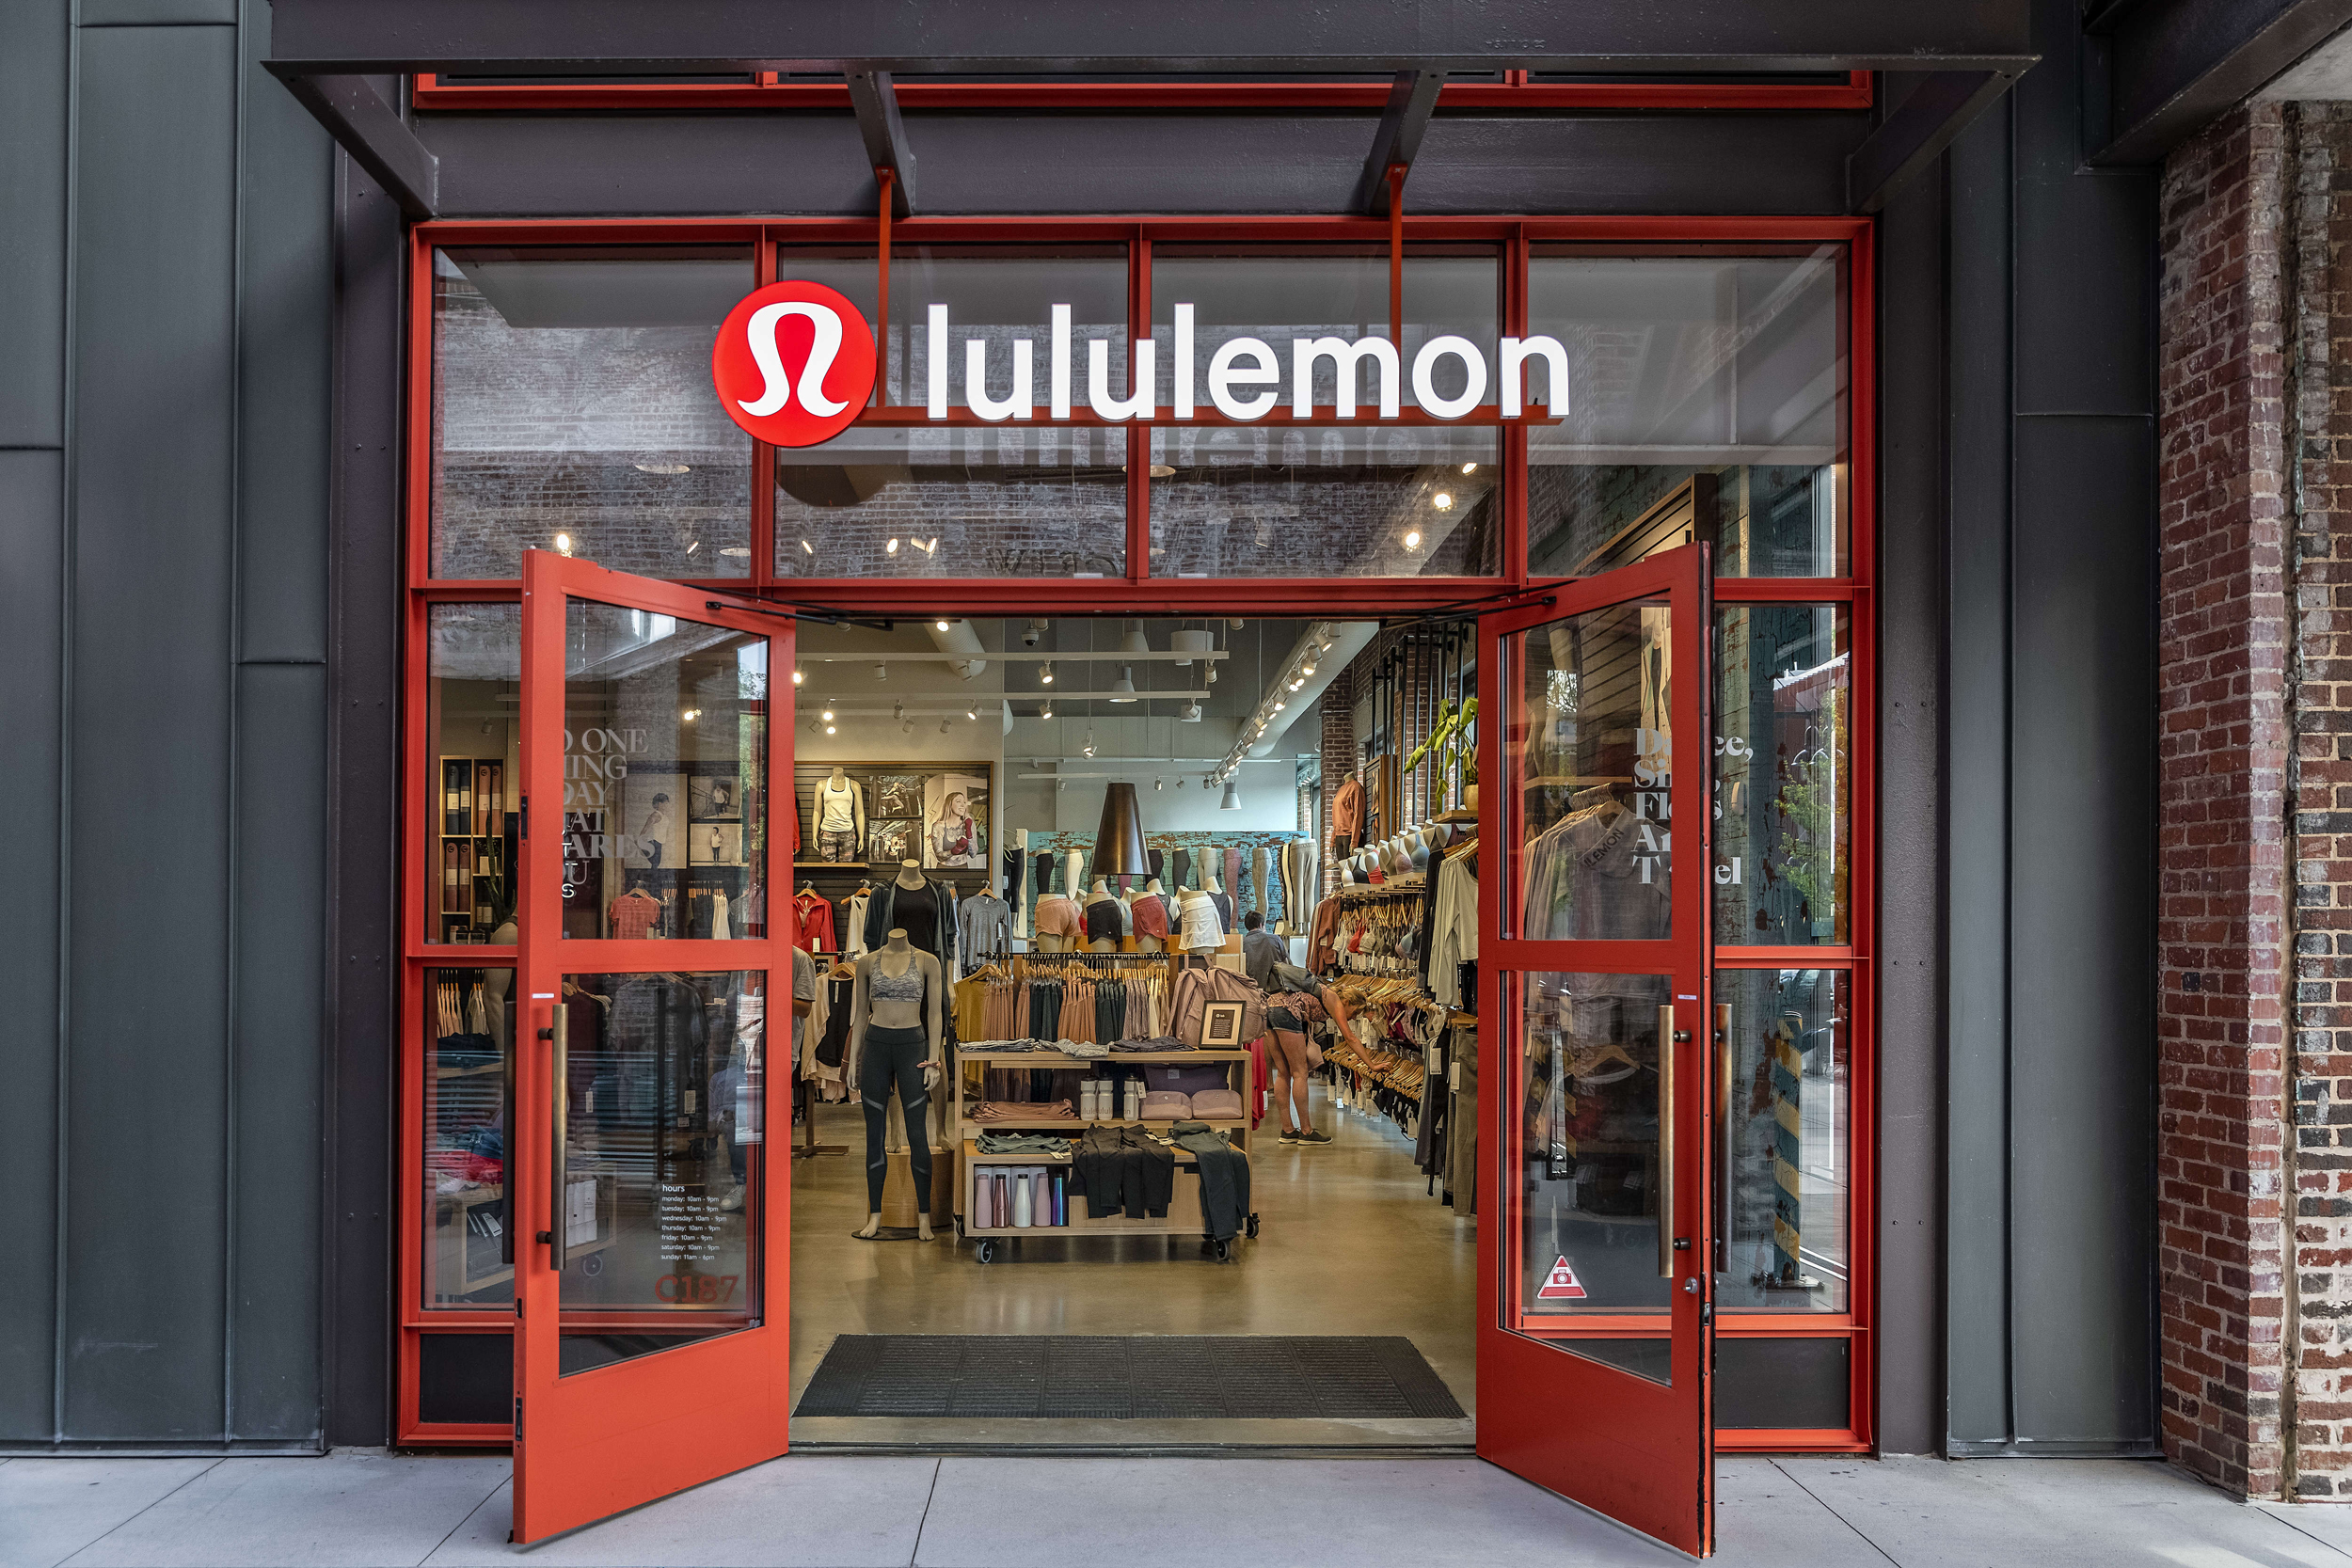 LULULEMON: makes technical athletic clothes for yoga, running, working out, and most other sweaty pursuits. As always, shipping is free.